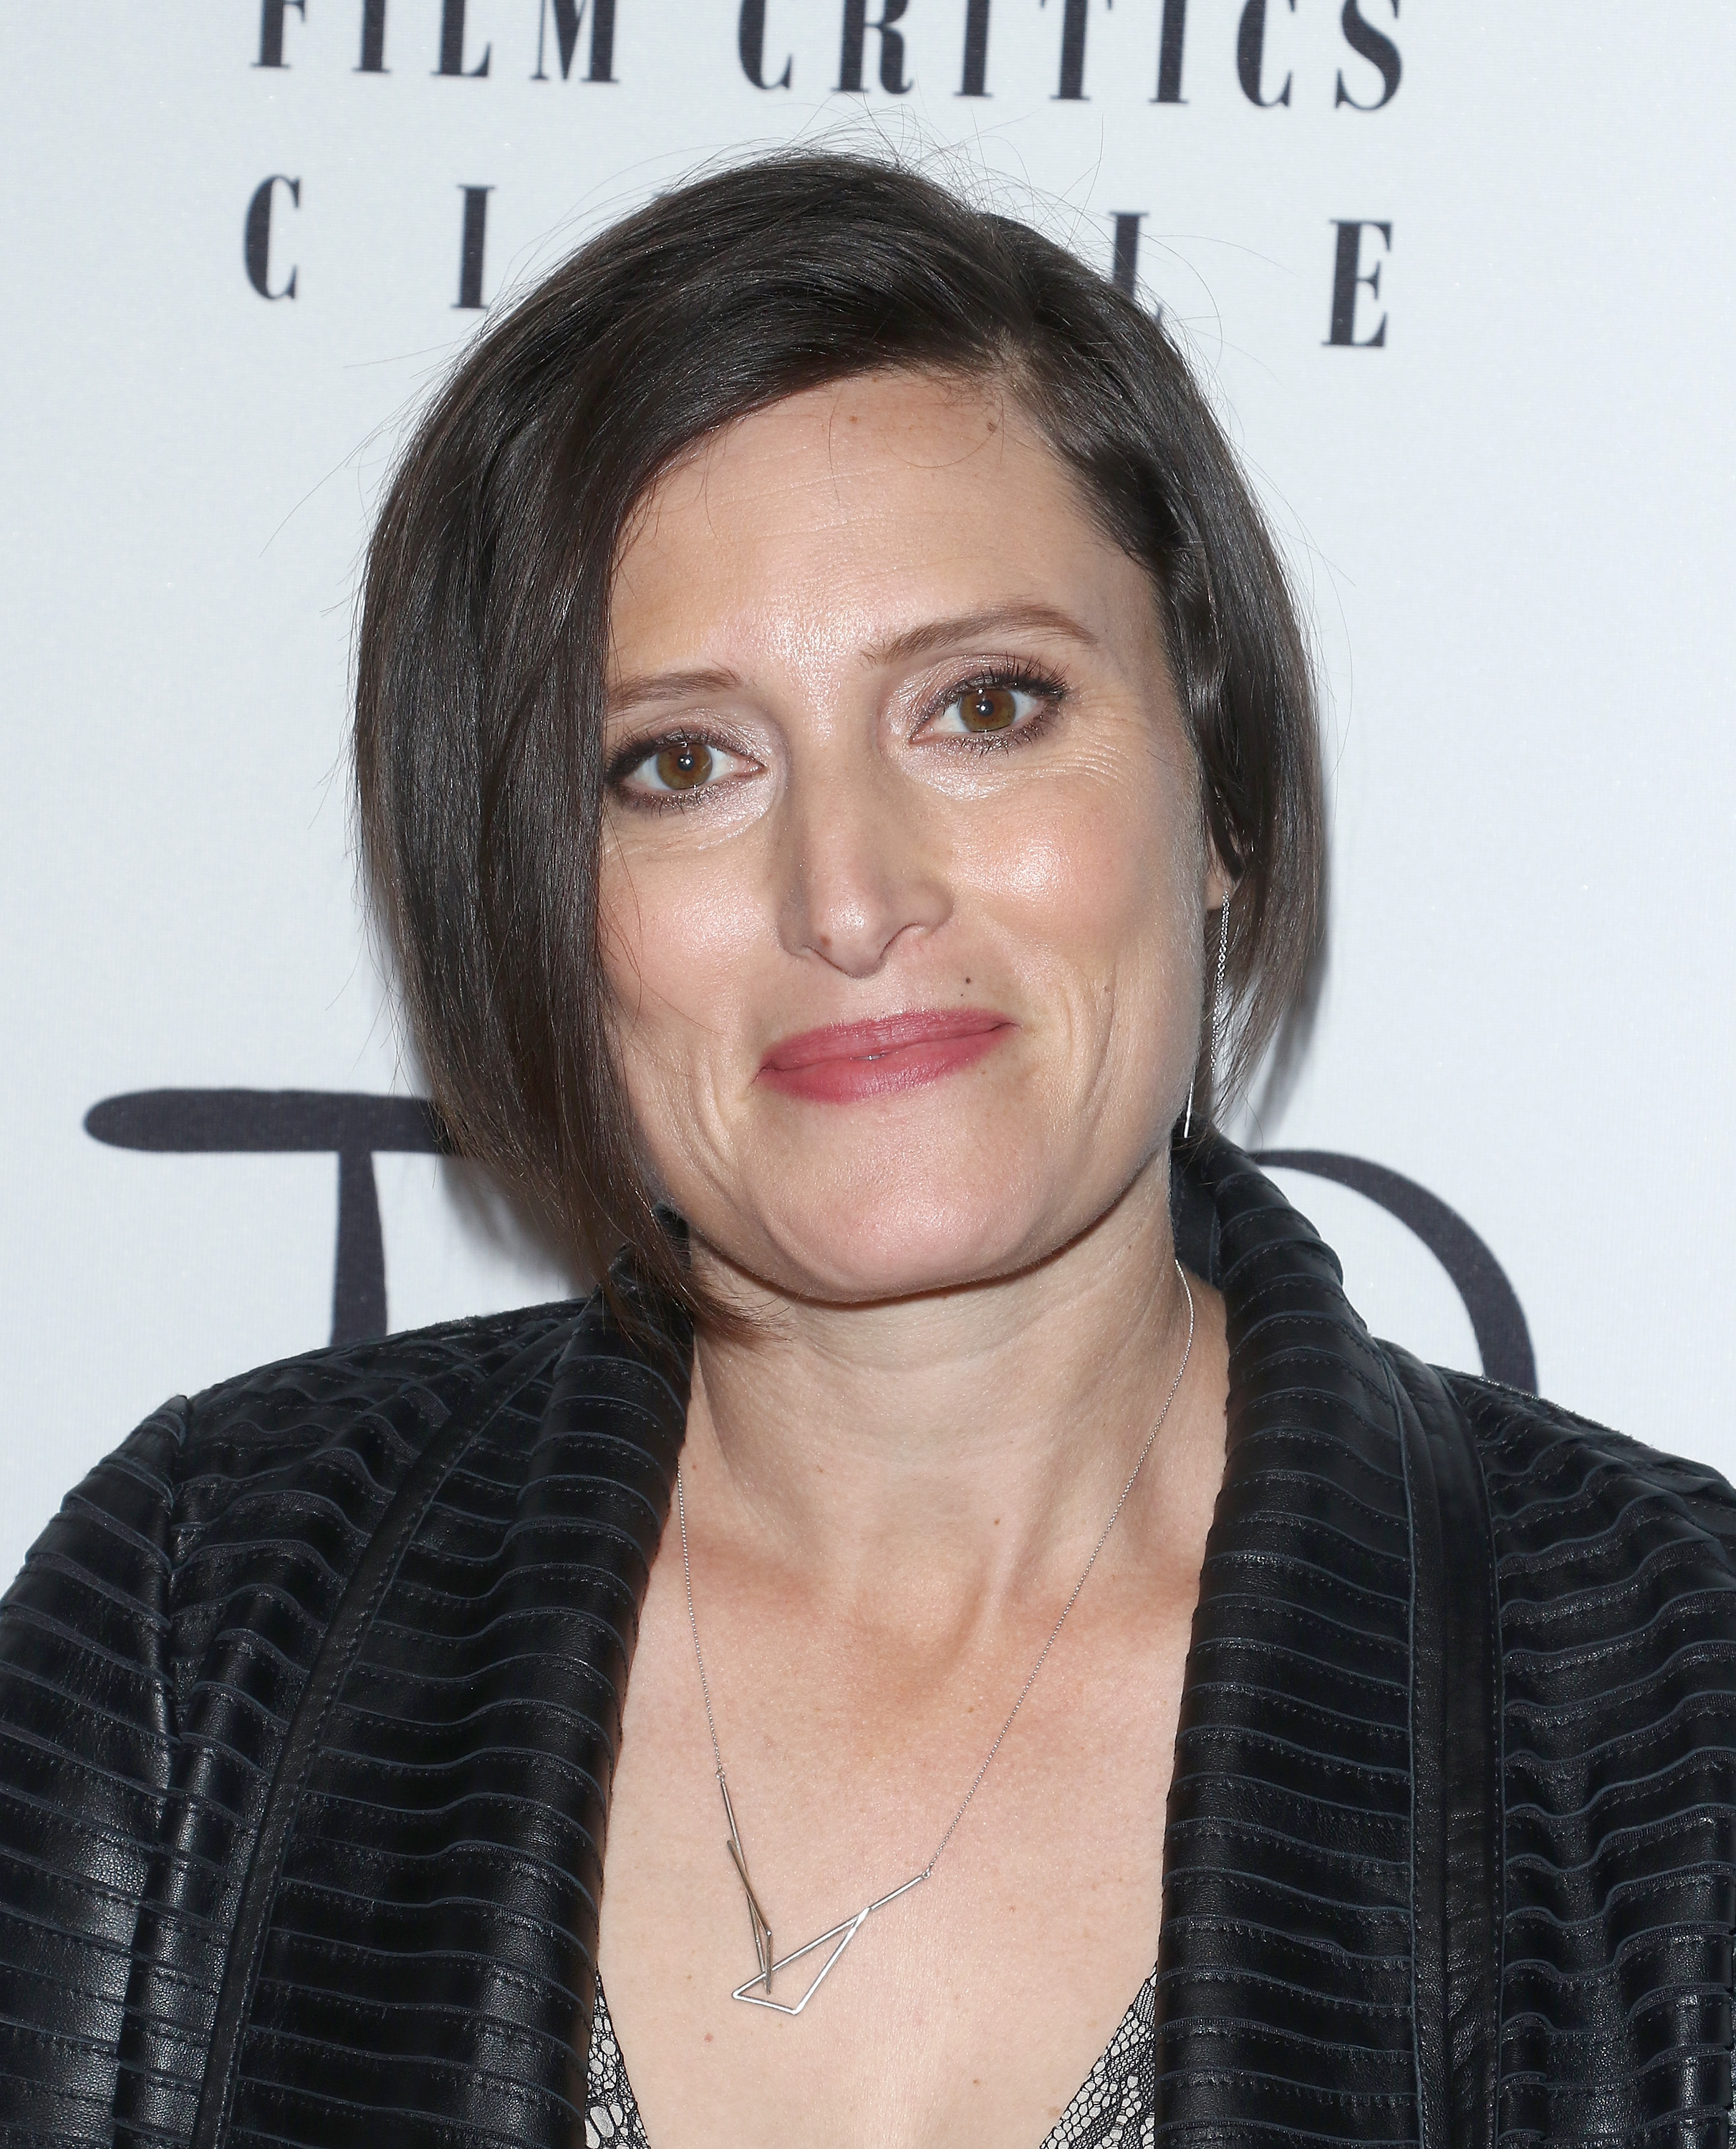 NEW YORK, NY - JANUARY 03: Cinematographer Rachel Morrison attends the 2017 New York Film Critics Awards at TAO Downtown on January 3, 2018 in New York City.  (Photo by Jim Spellman/WireImage)